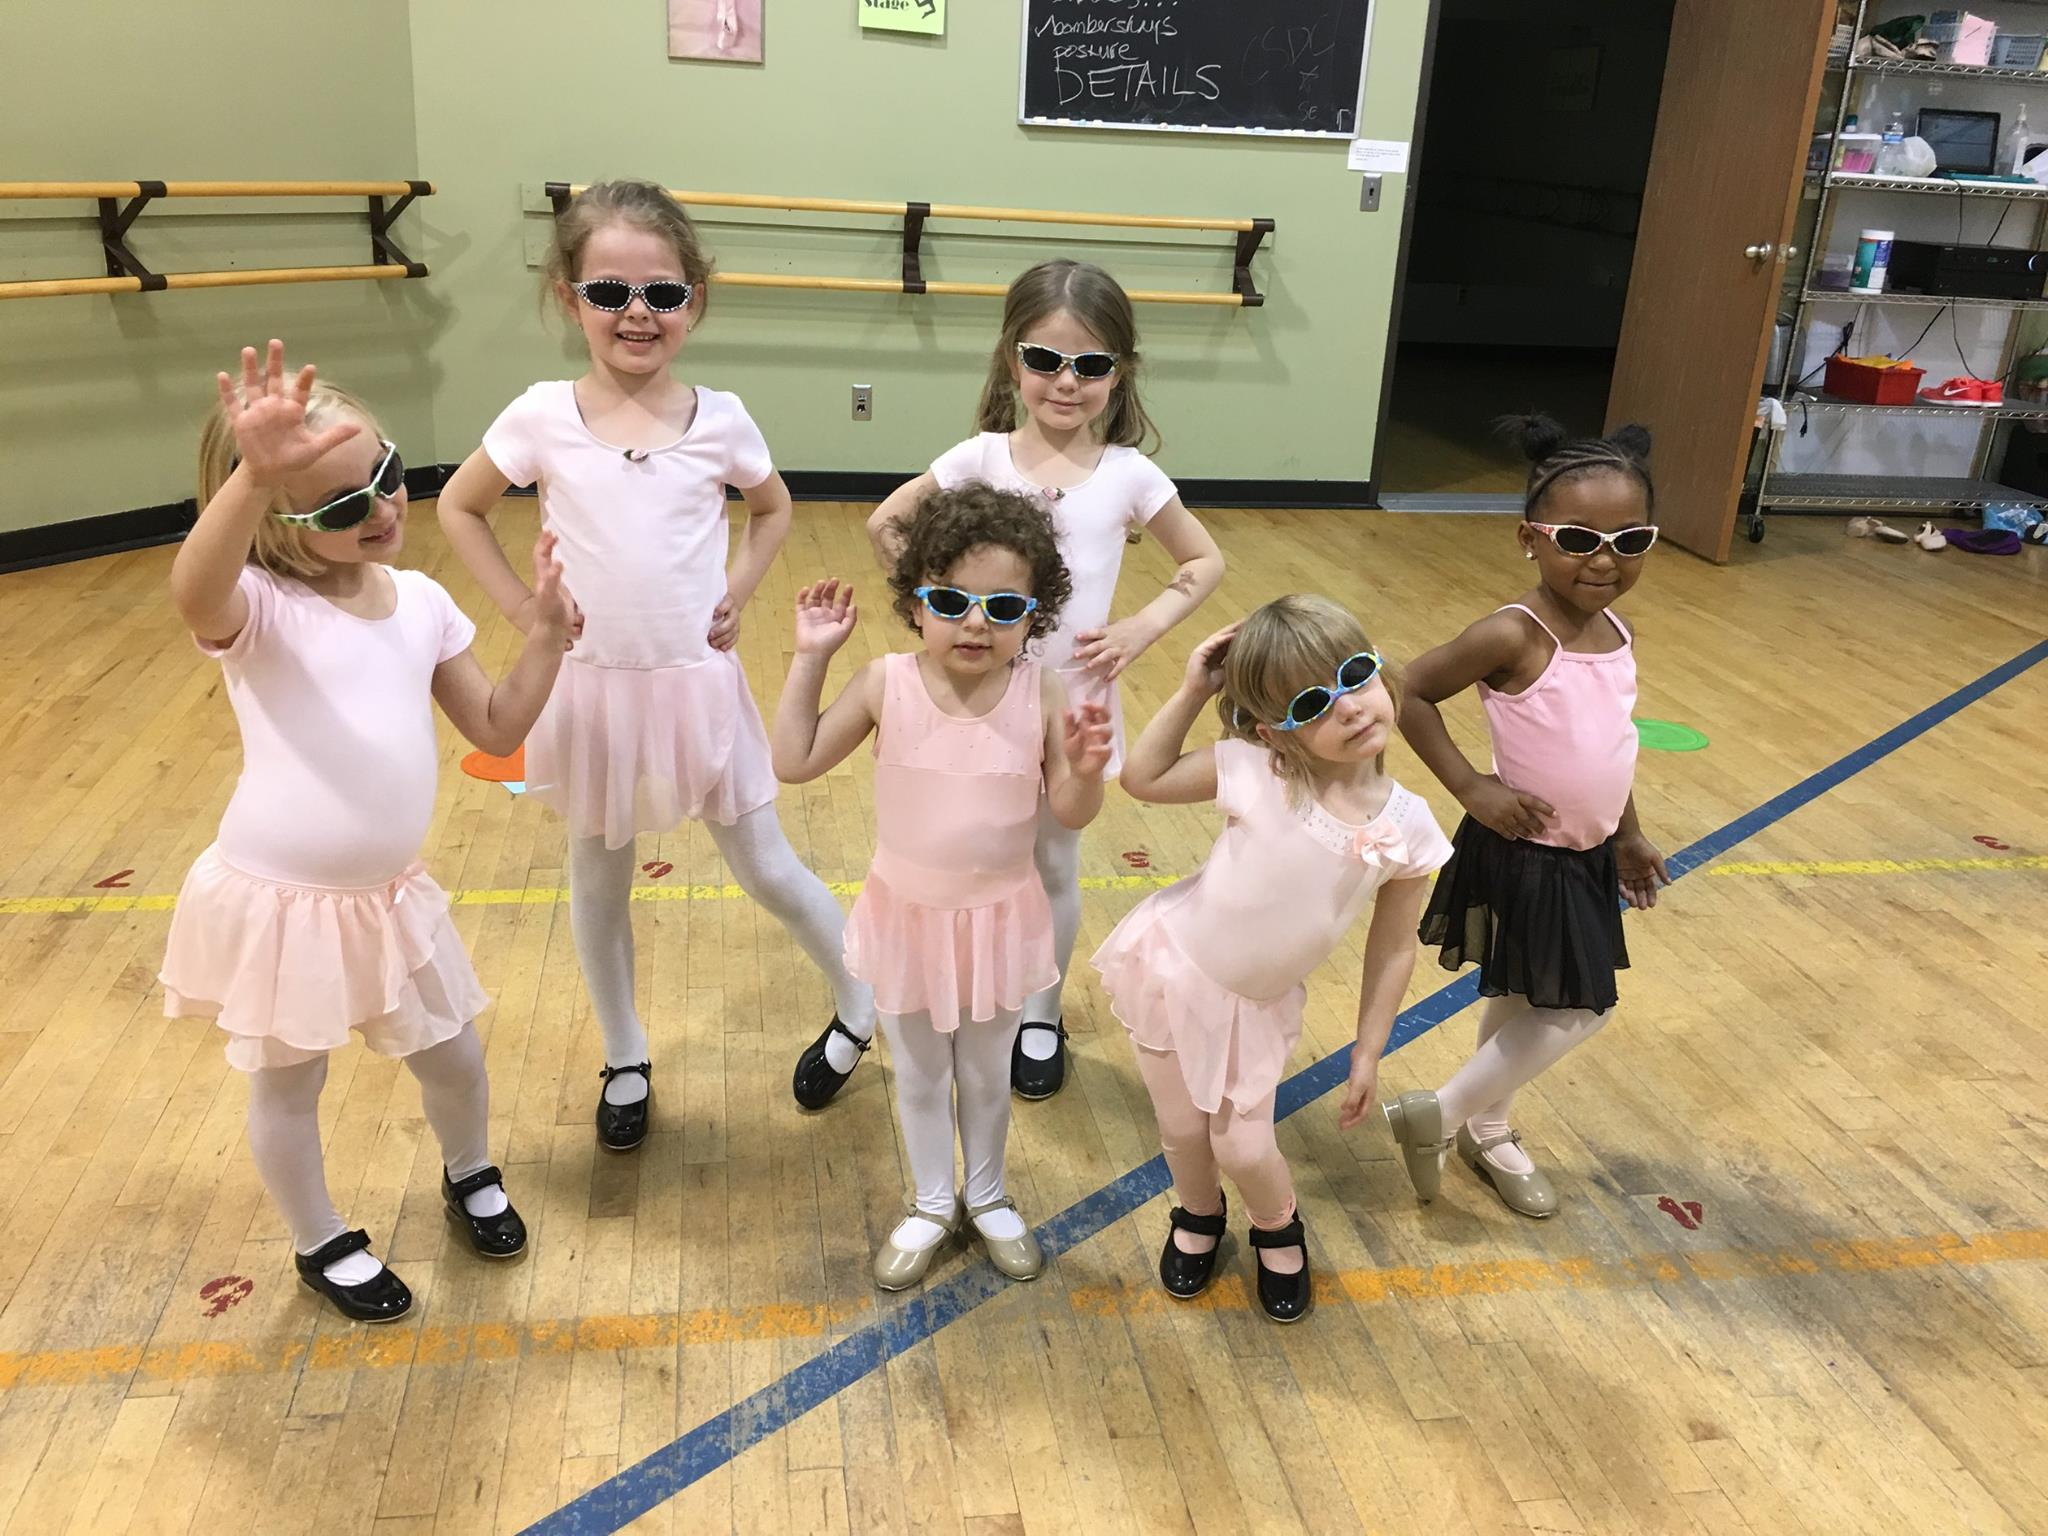 Pre-school dancers ready for summer dance classes